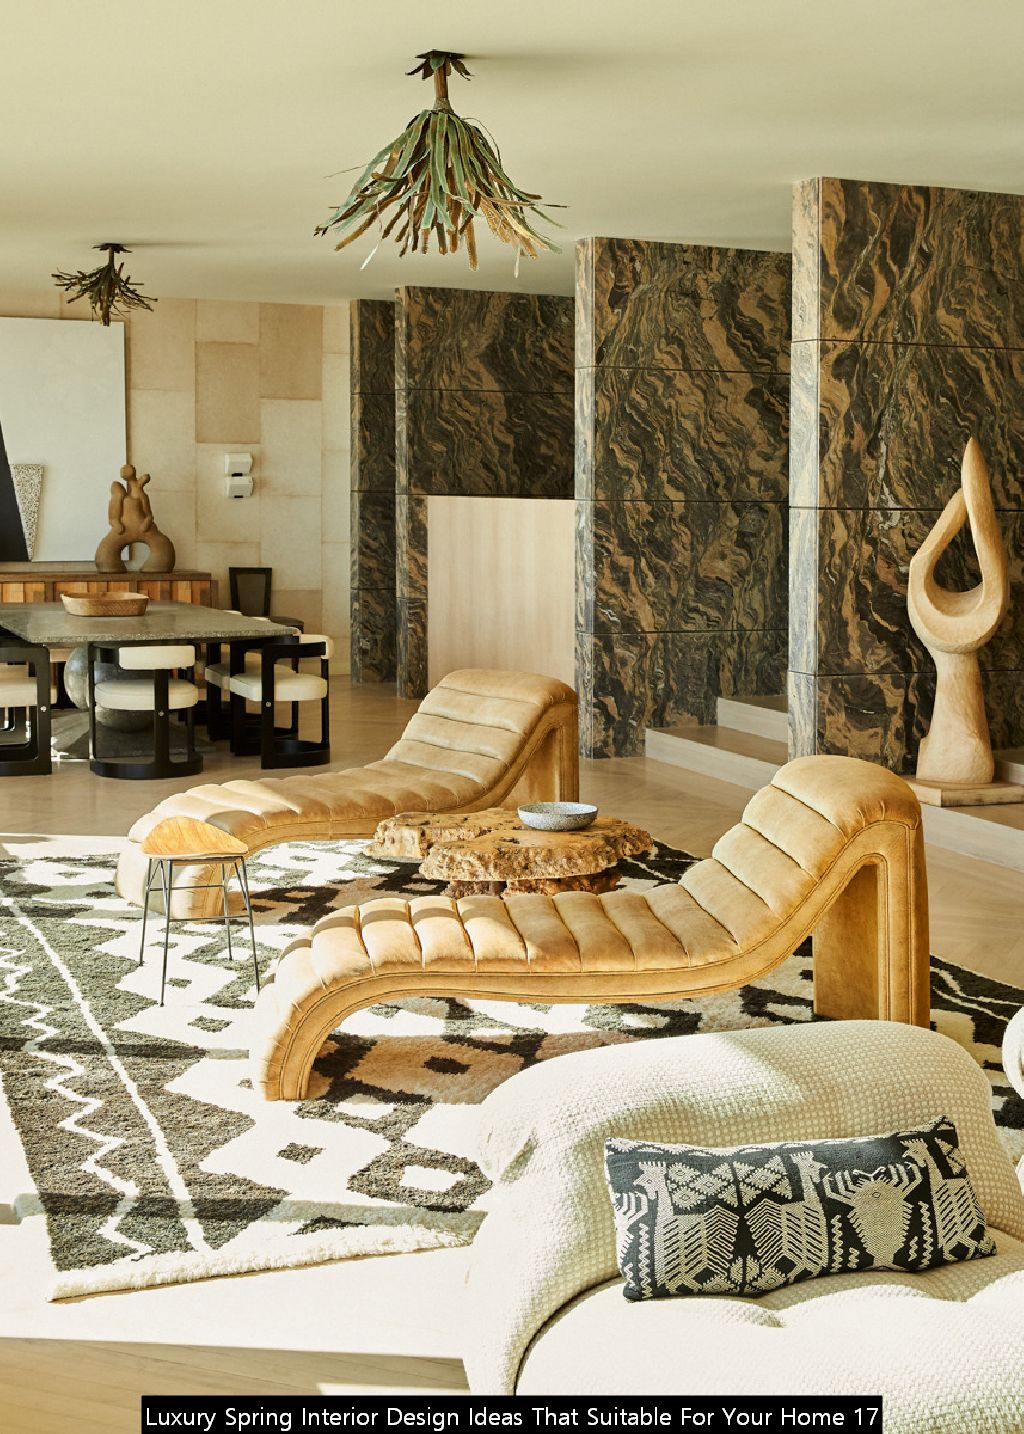 Luxury Spring Interior Design Ideas That Suitable For Your Home 17